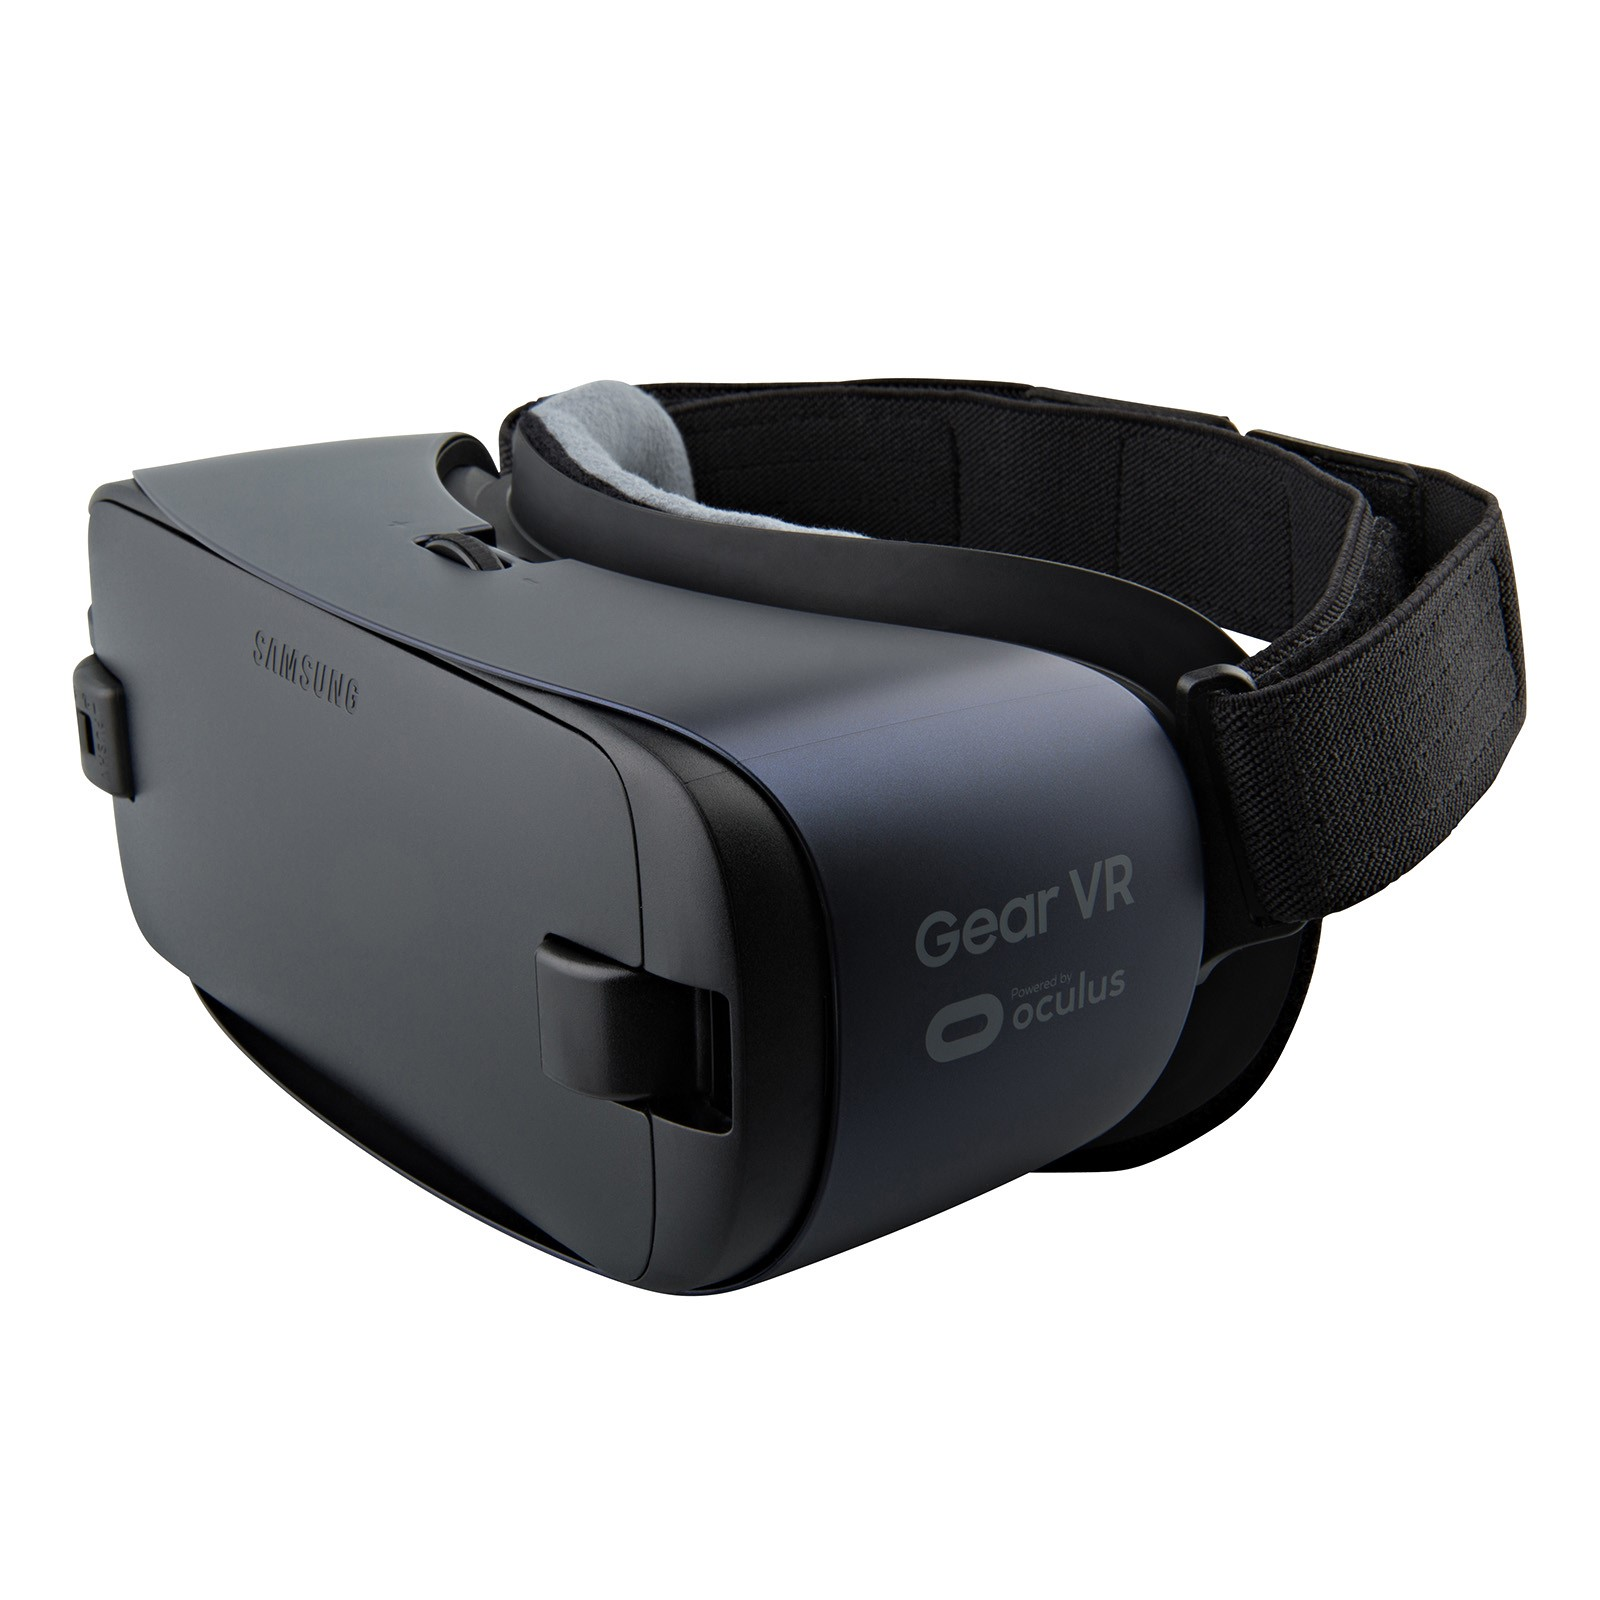 Samsung Gear VR 2 Vitual Reality Headset International Version (Black) SAM-GEARVR2-INTL-A1